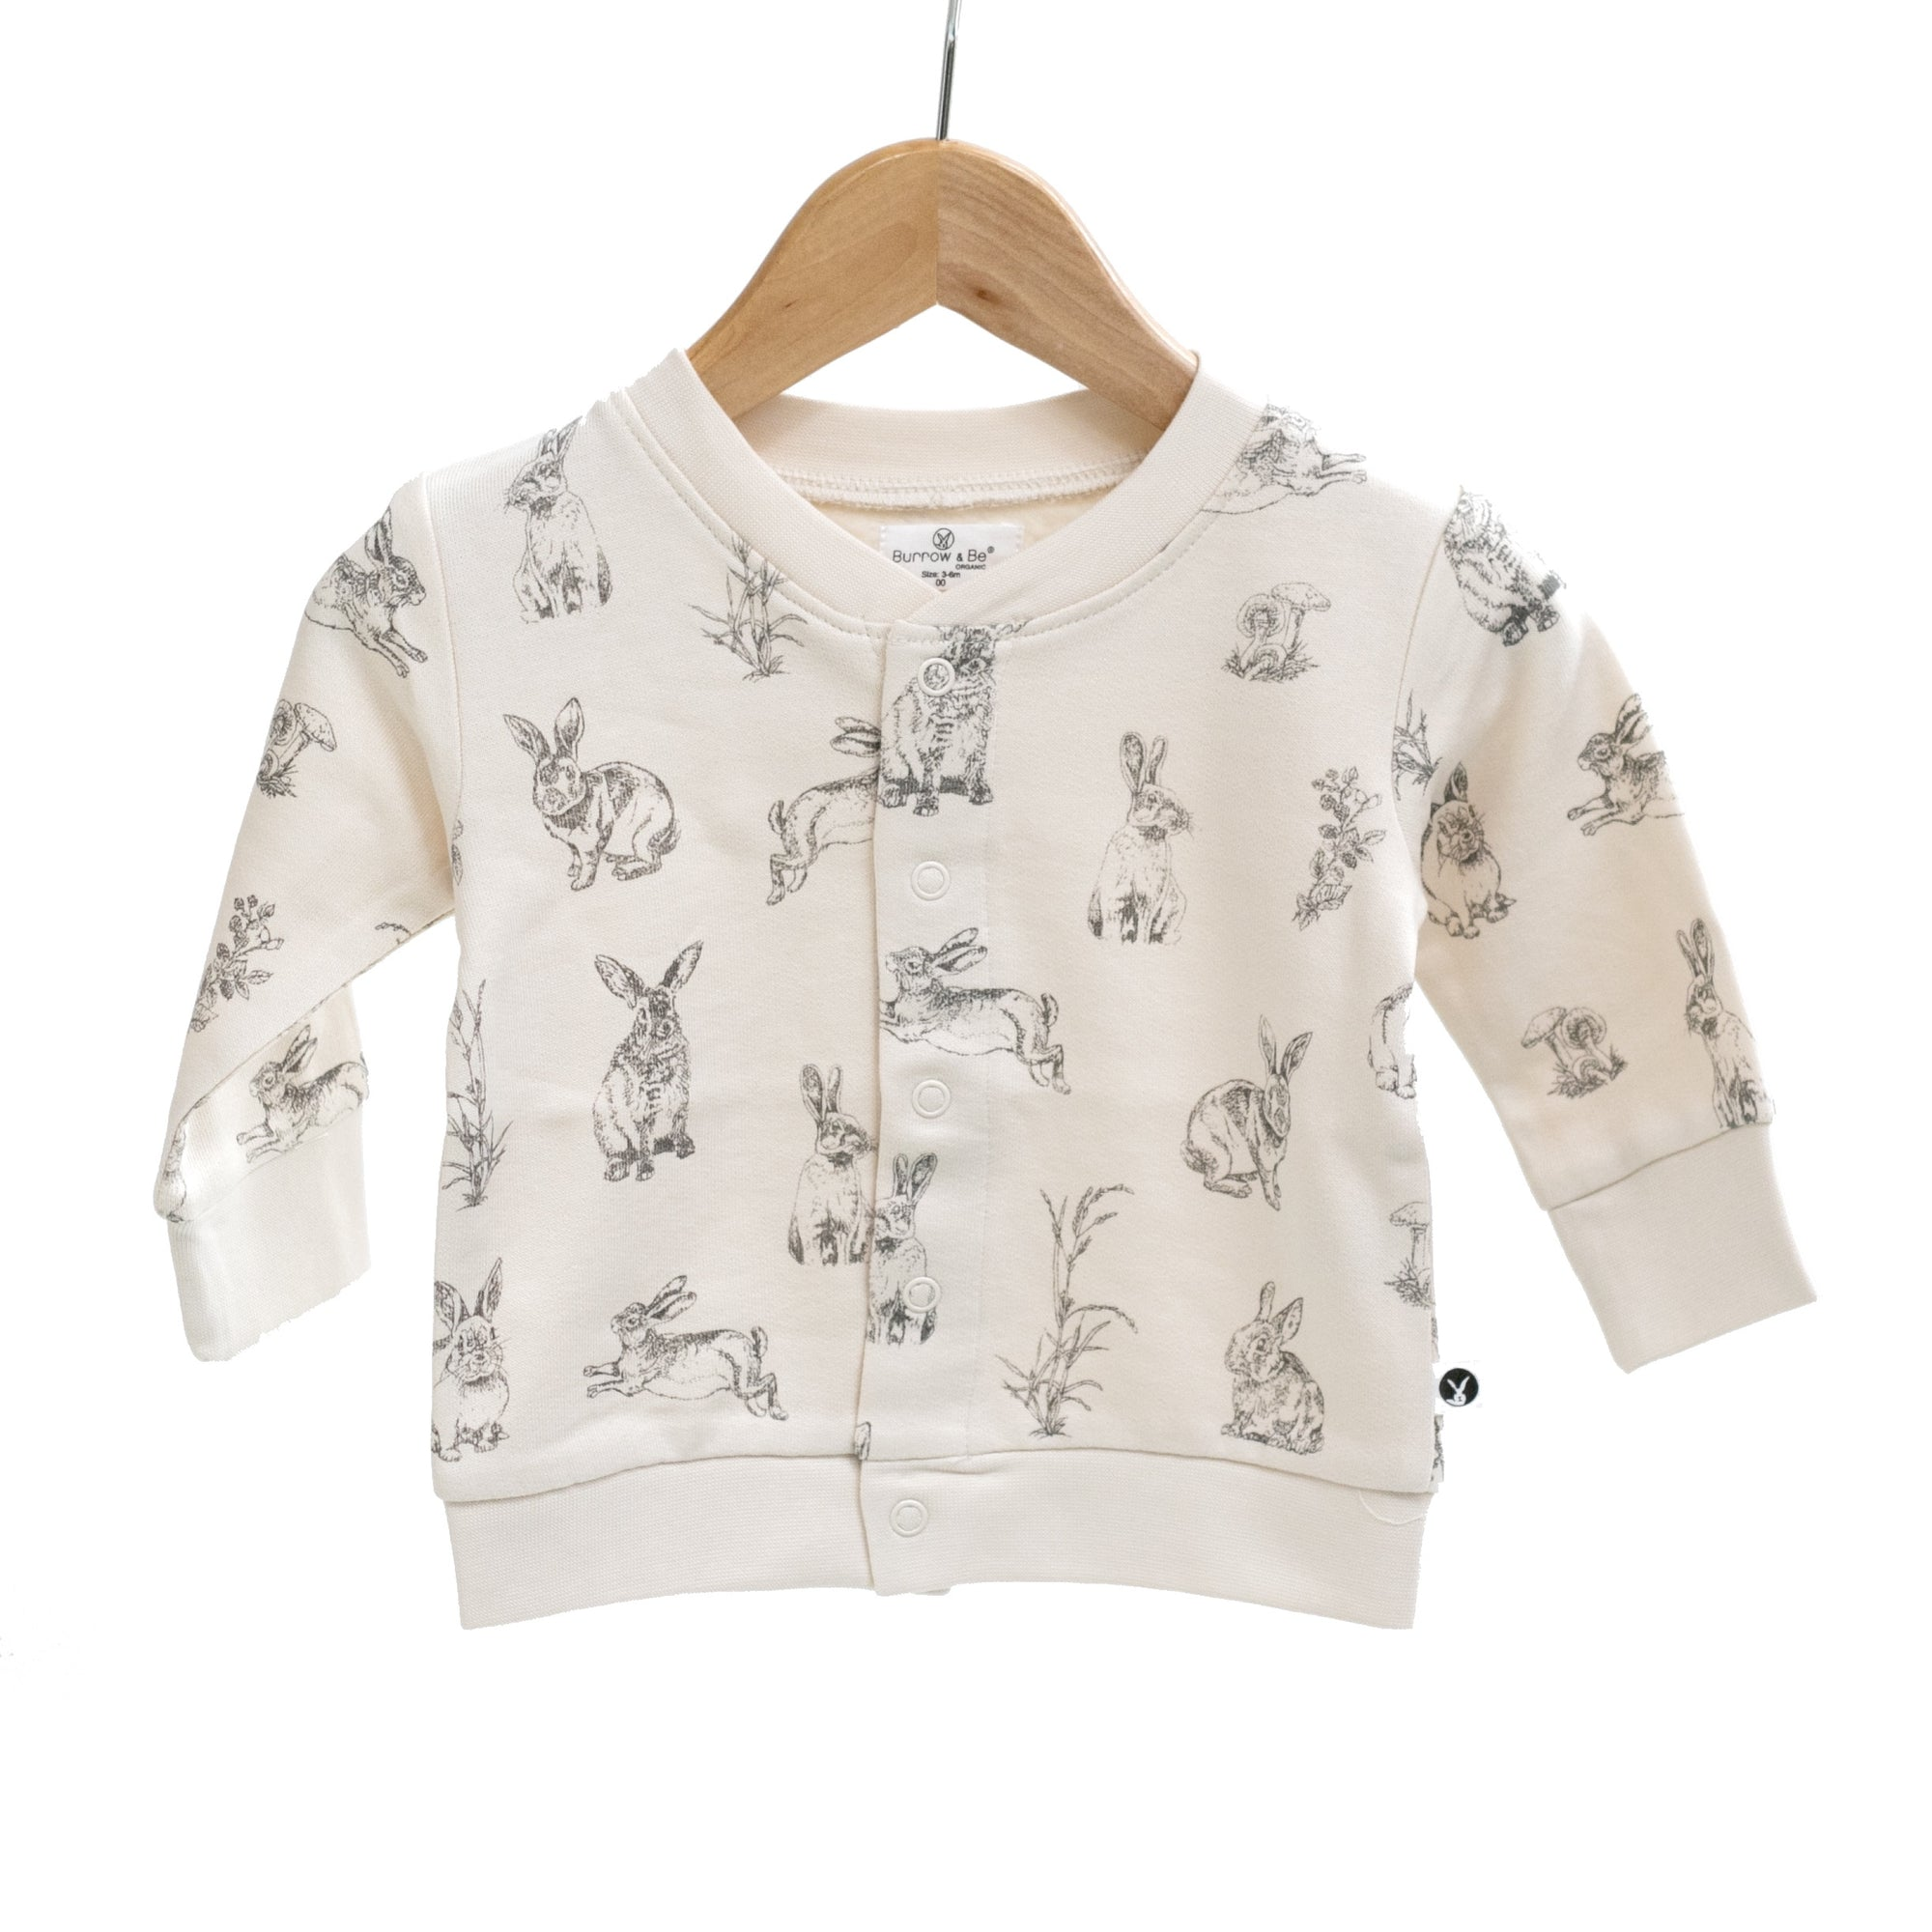 Burrow & Be Almond Burrowers Cardi